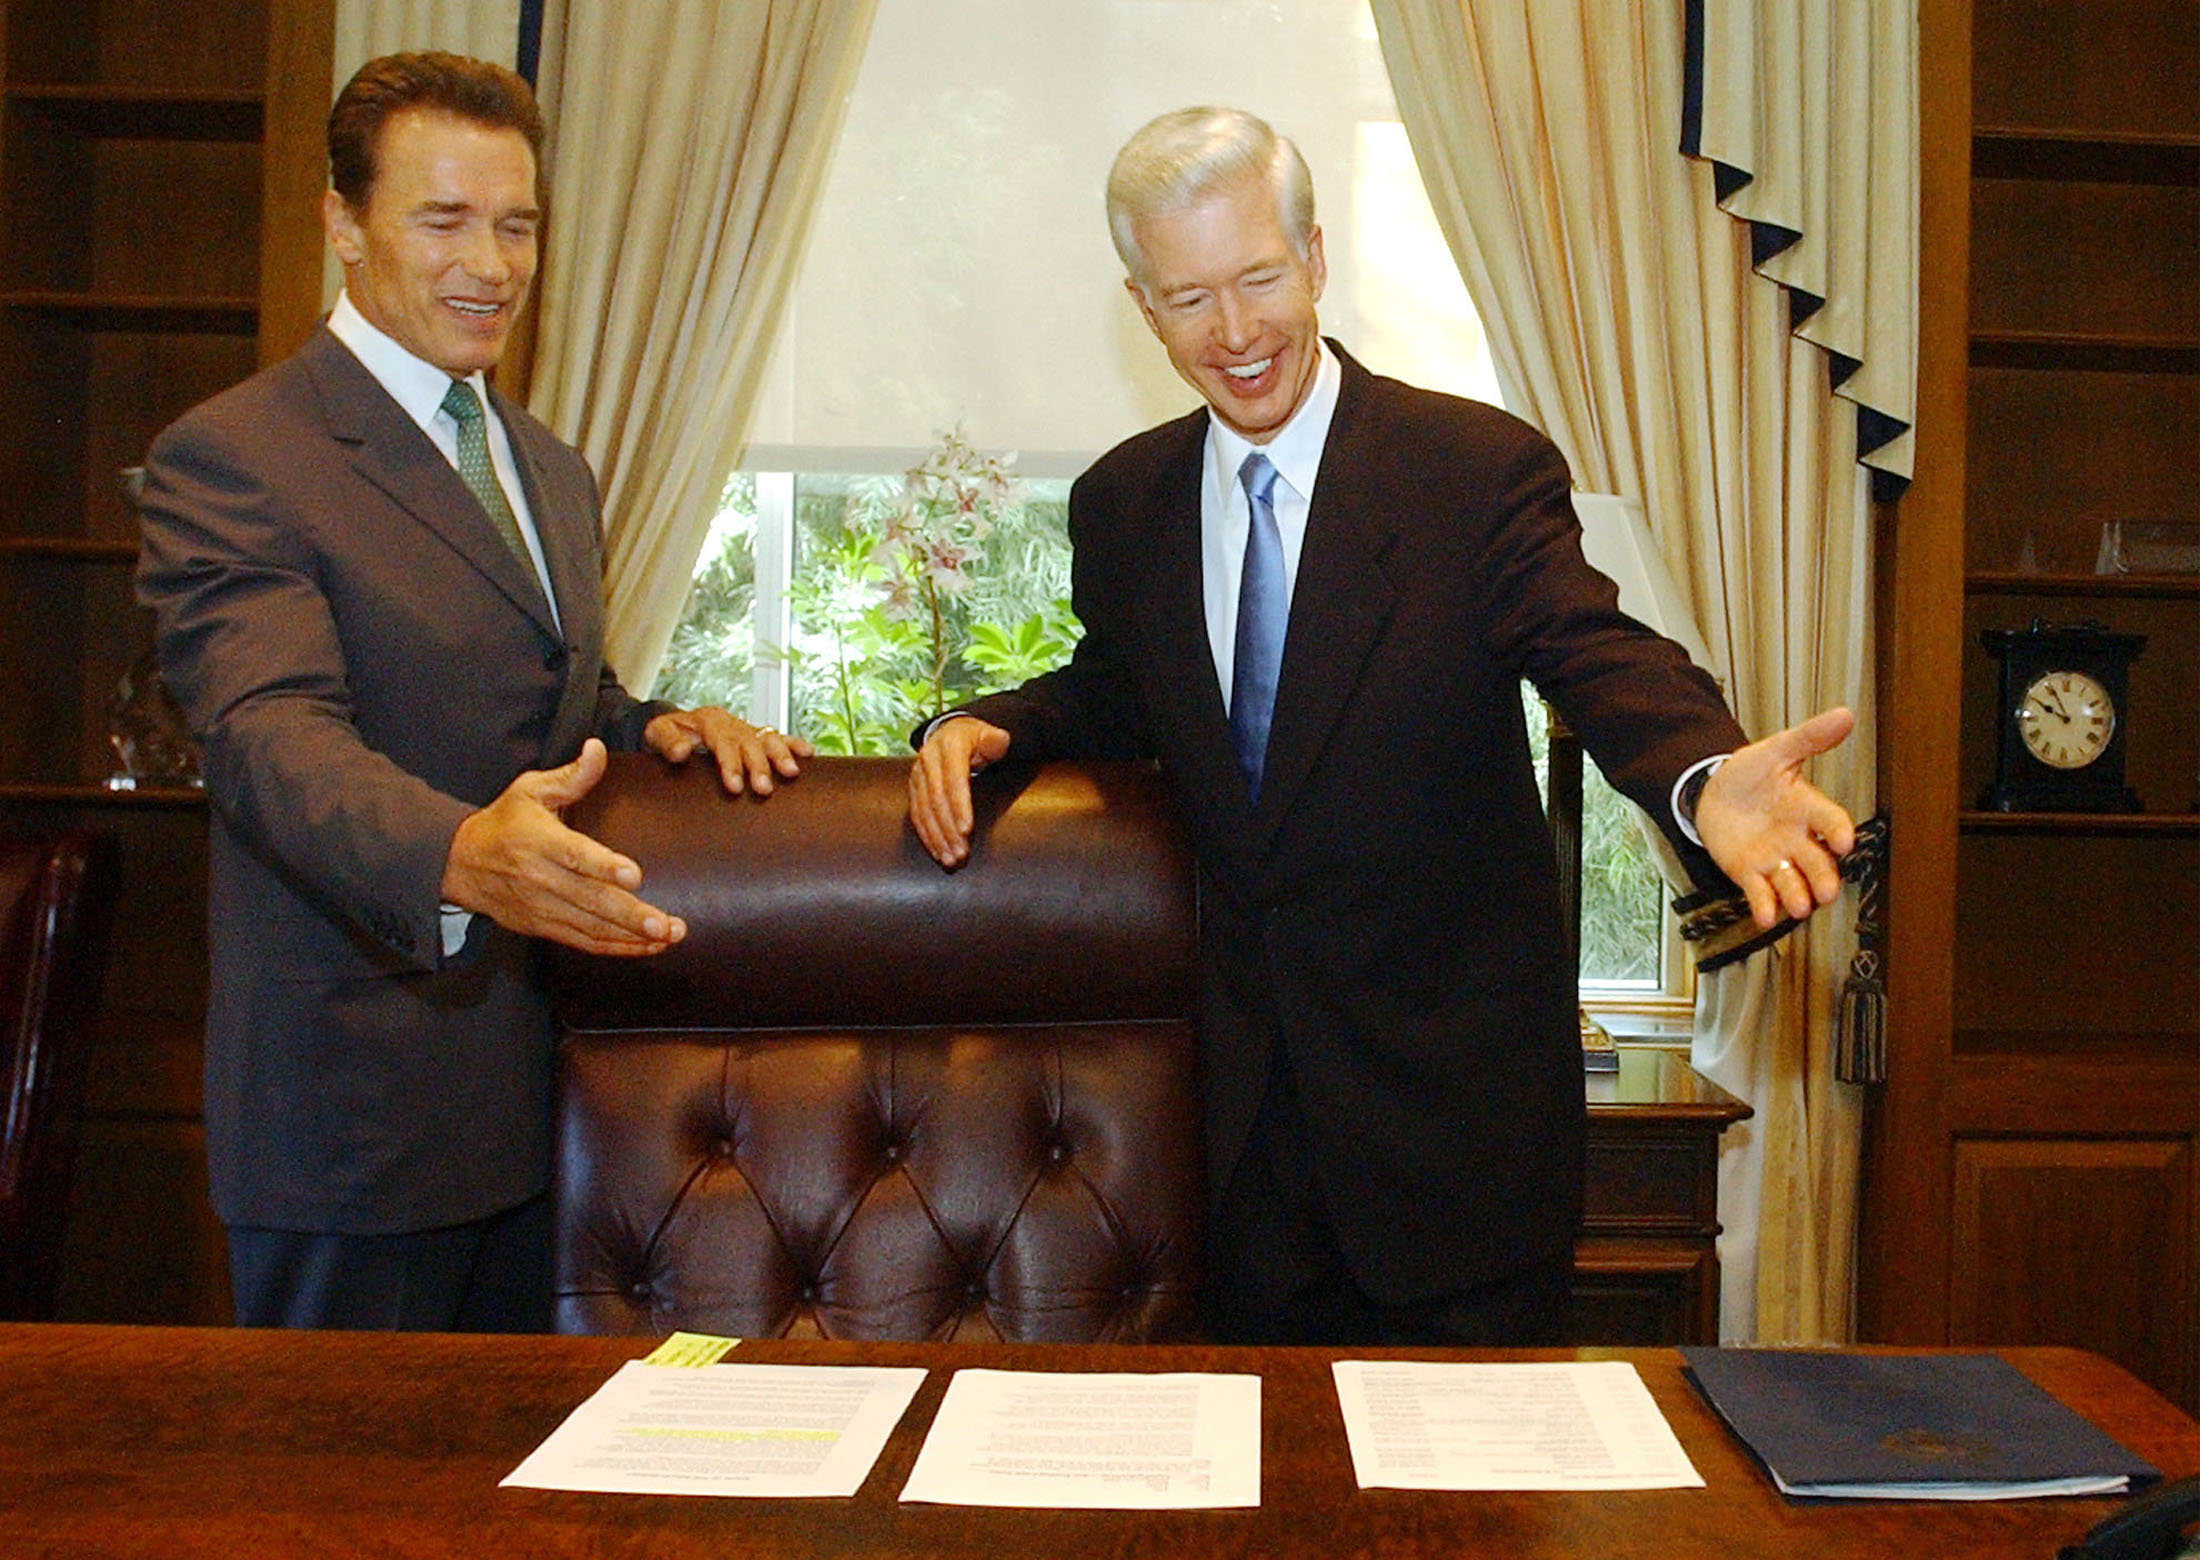 CALIFORNIA GOVERNOR ELECT SCHWARZENEGGER MEETS WITH GRAY DAVIS INSACRAMENTO.